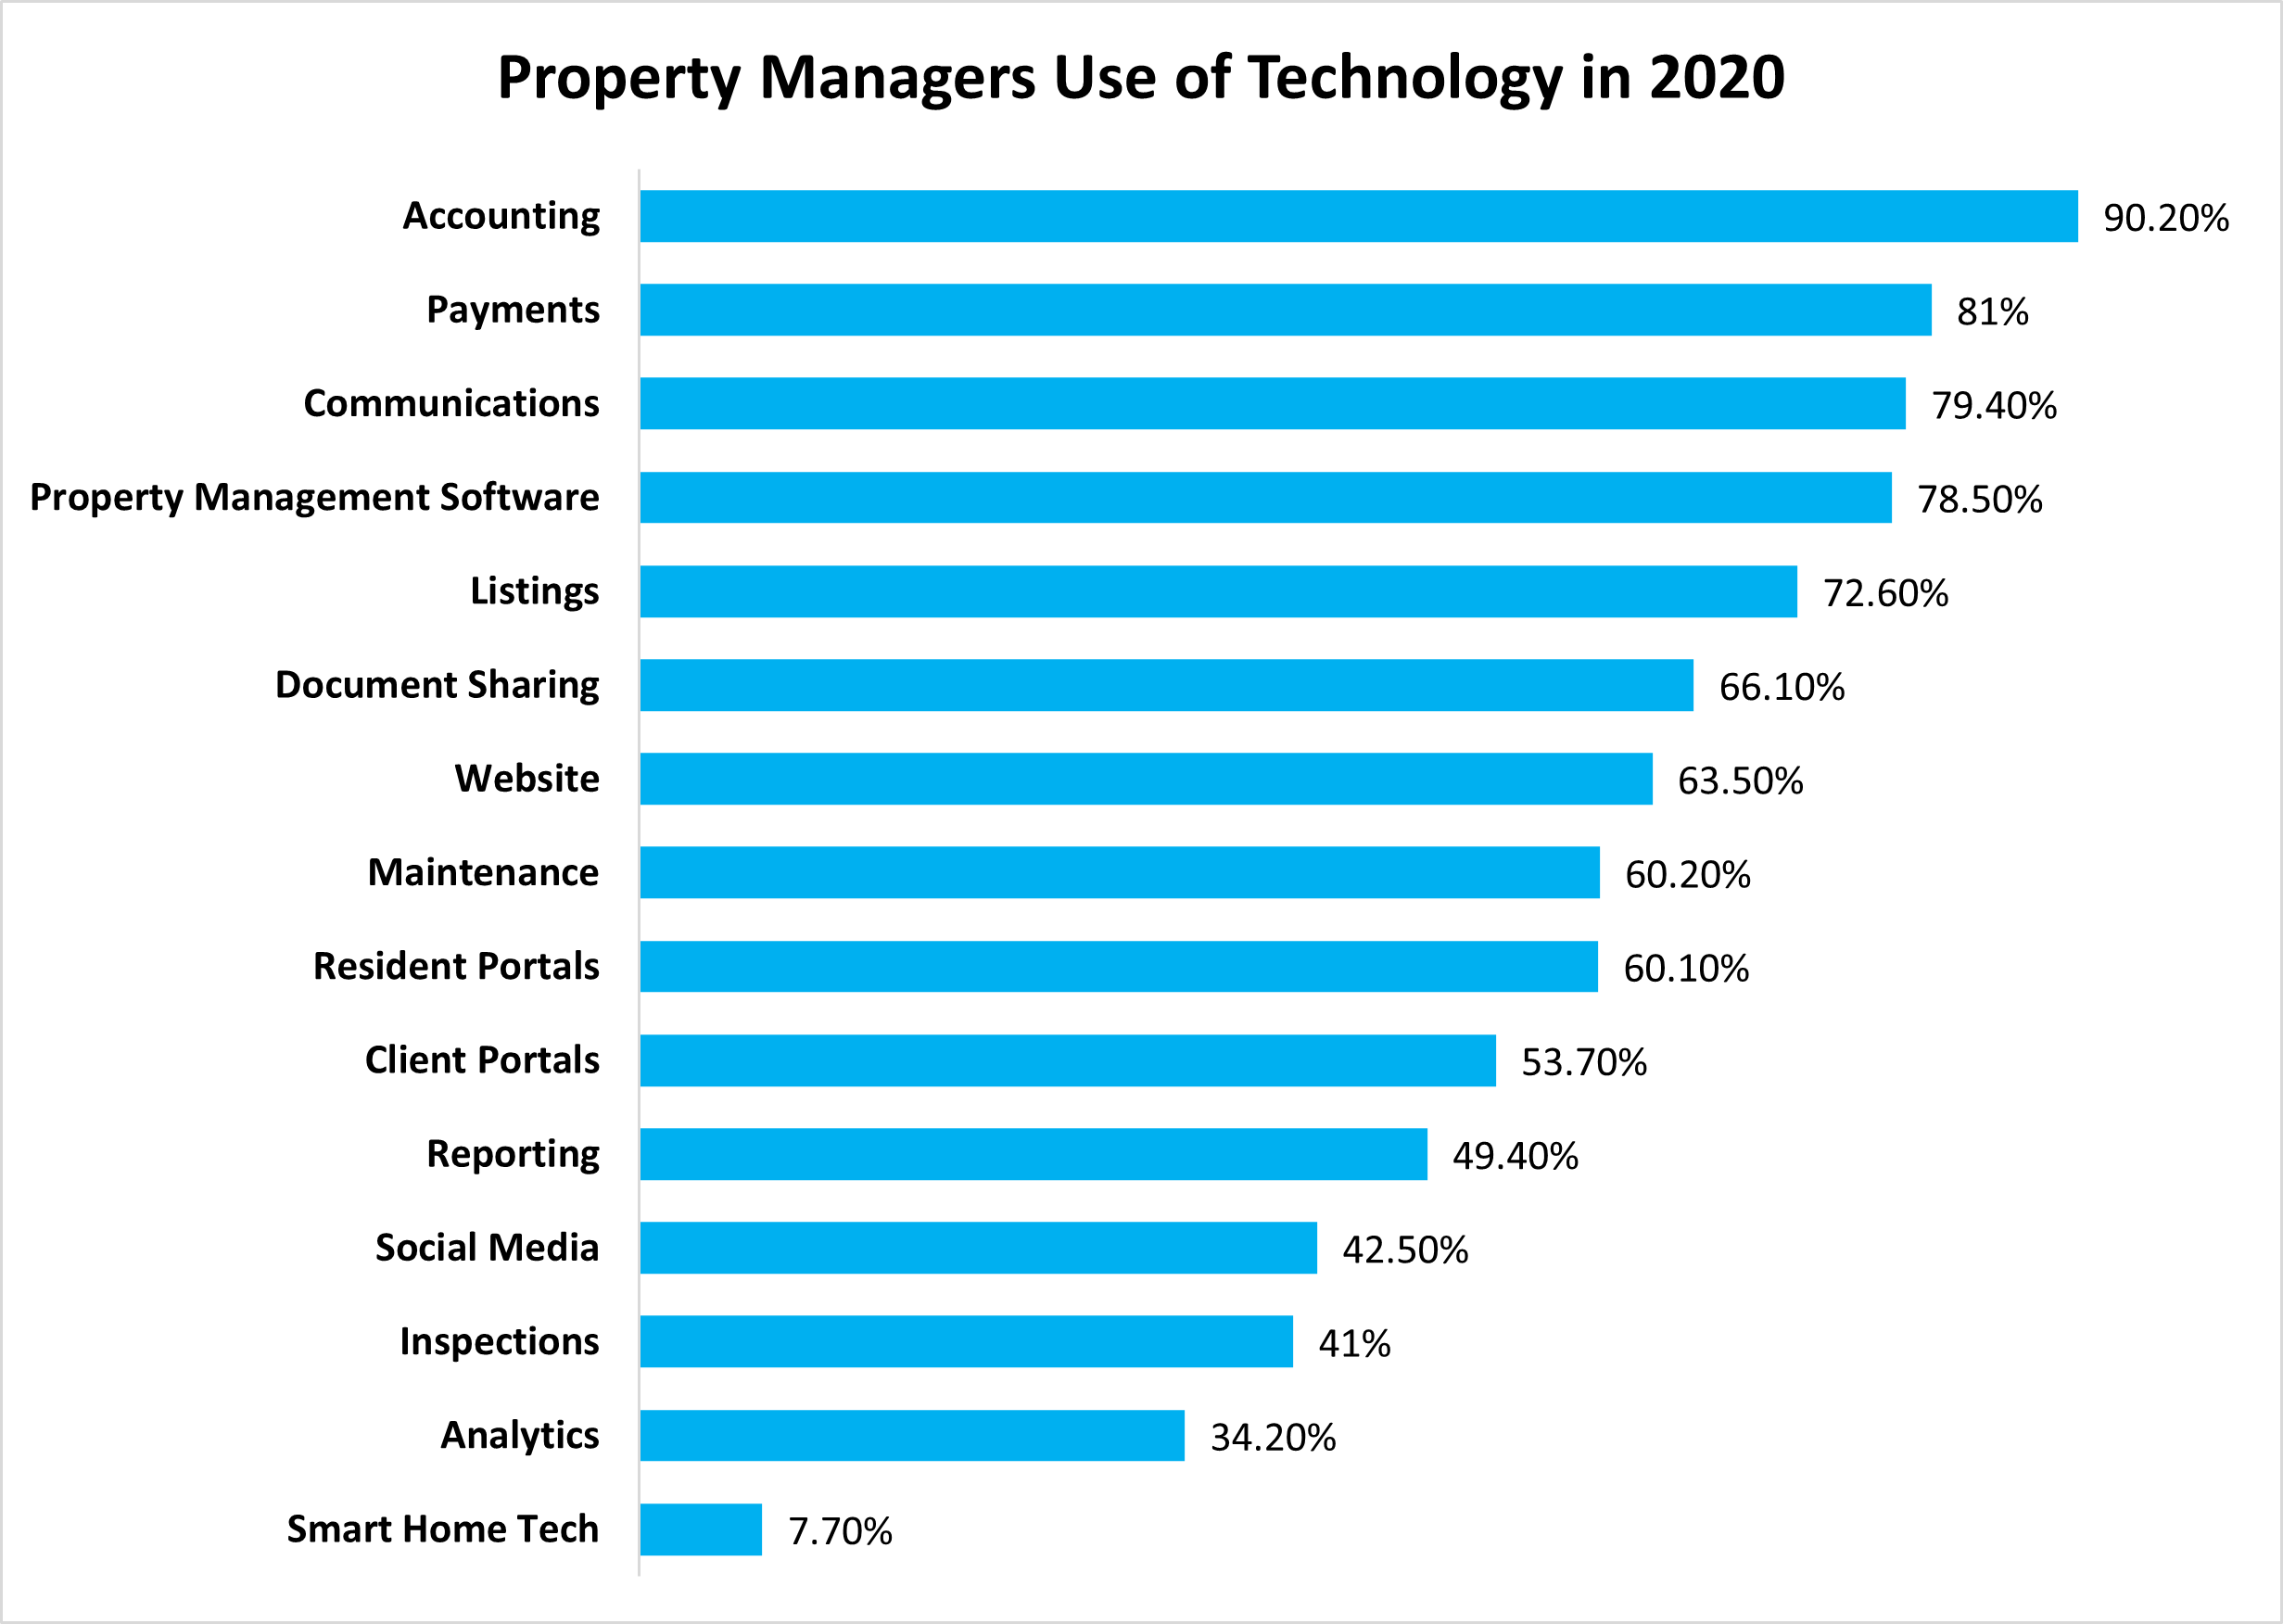 Which Tools Do Property Managers Use The Most?